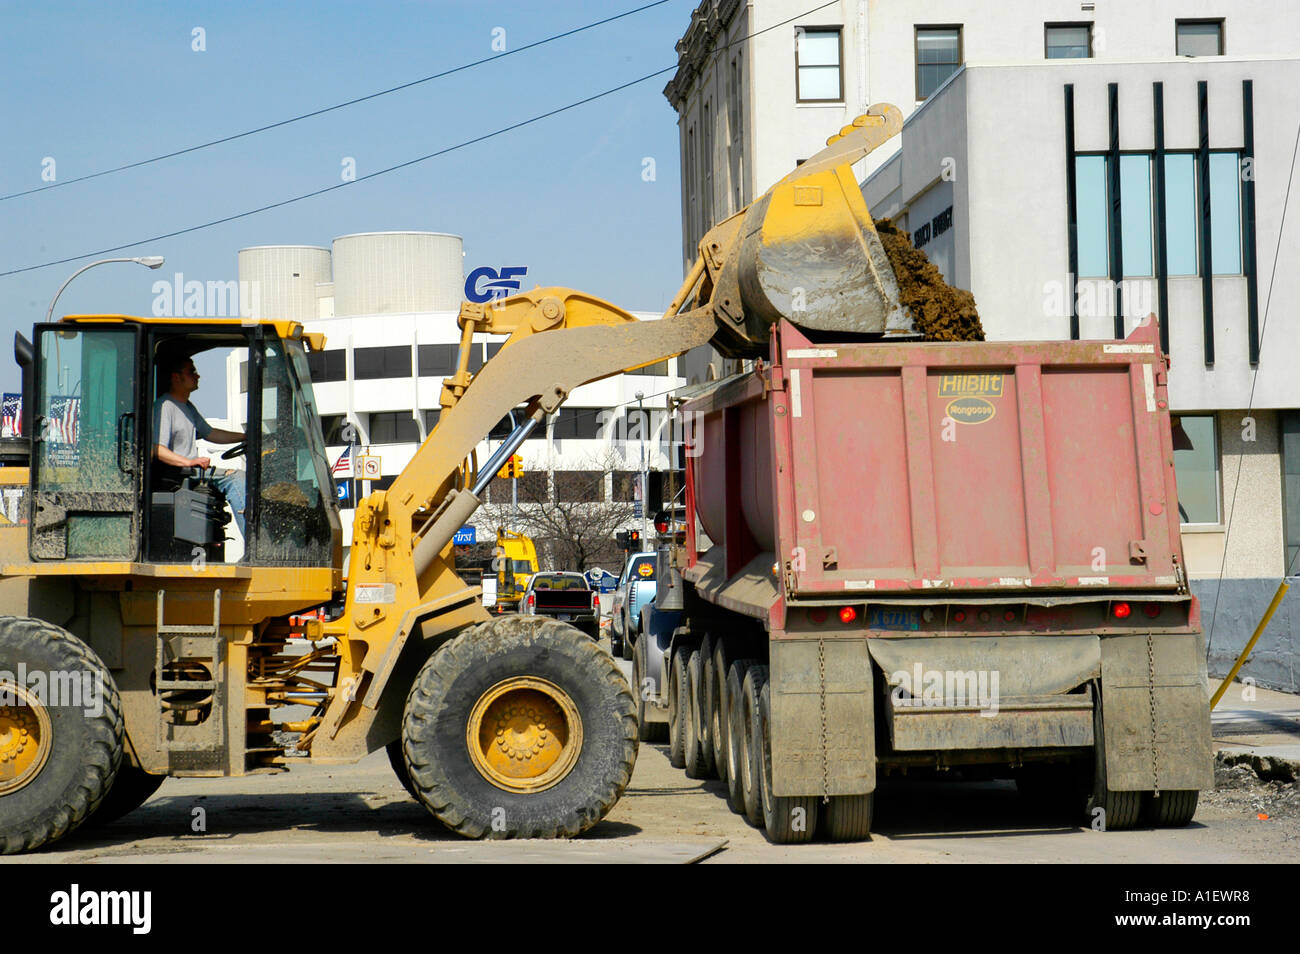 heavy equipment and manual labor us used in road repair and new rh alamy com heavy equipment manuals wanted heavy equipment manuals for grove rt58